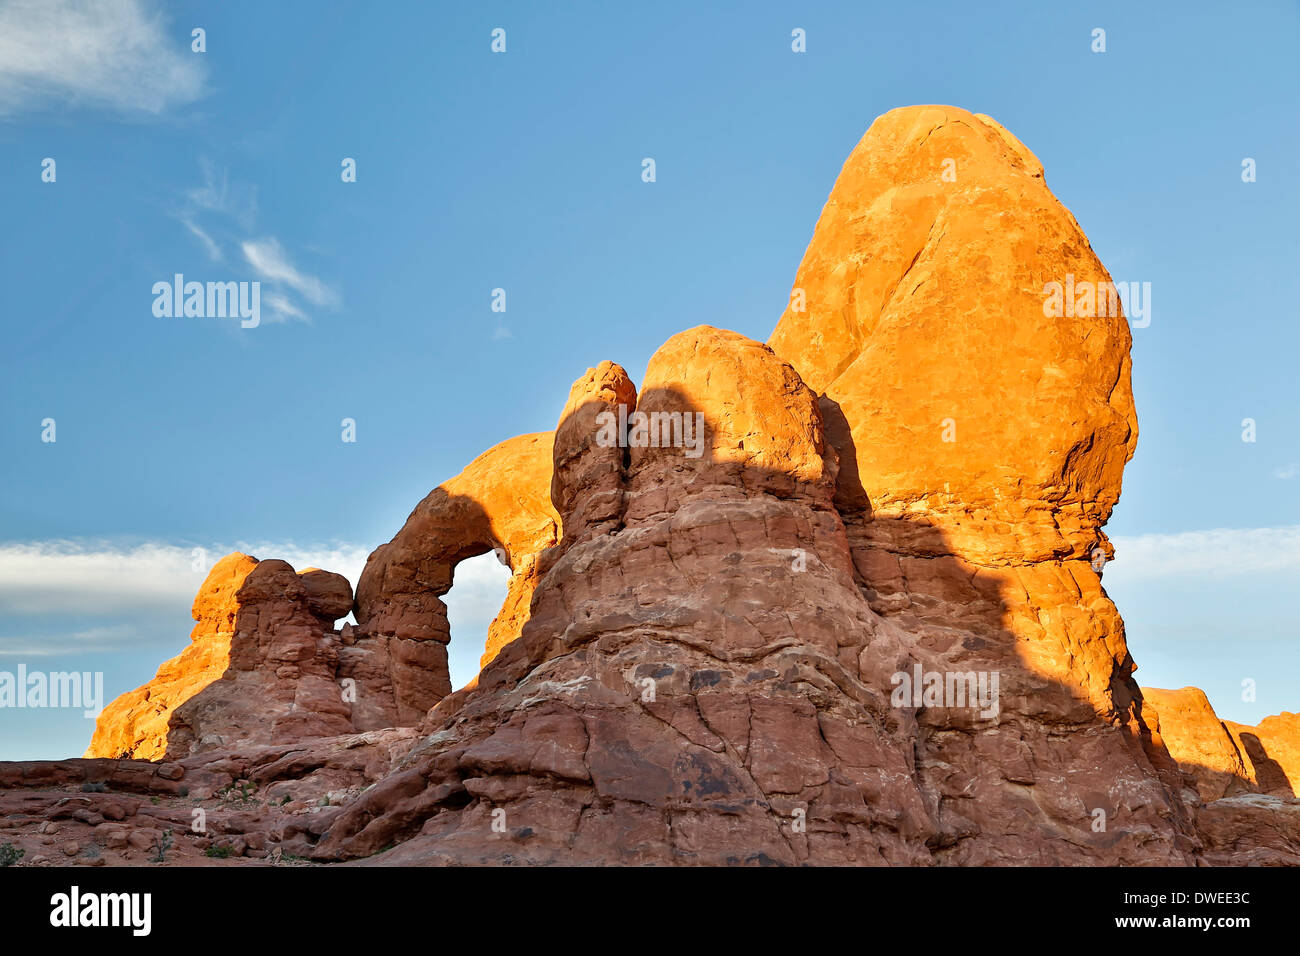 Turret Arch, Arches National Park, Moab, Utah USA - Stock Image